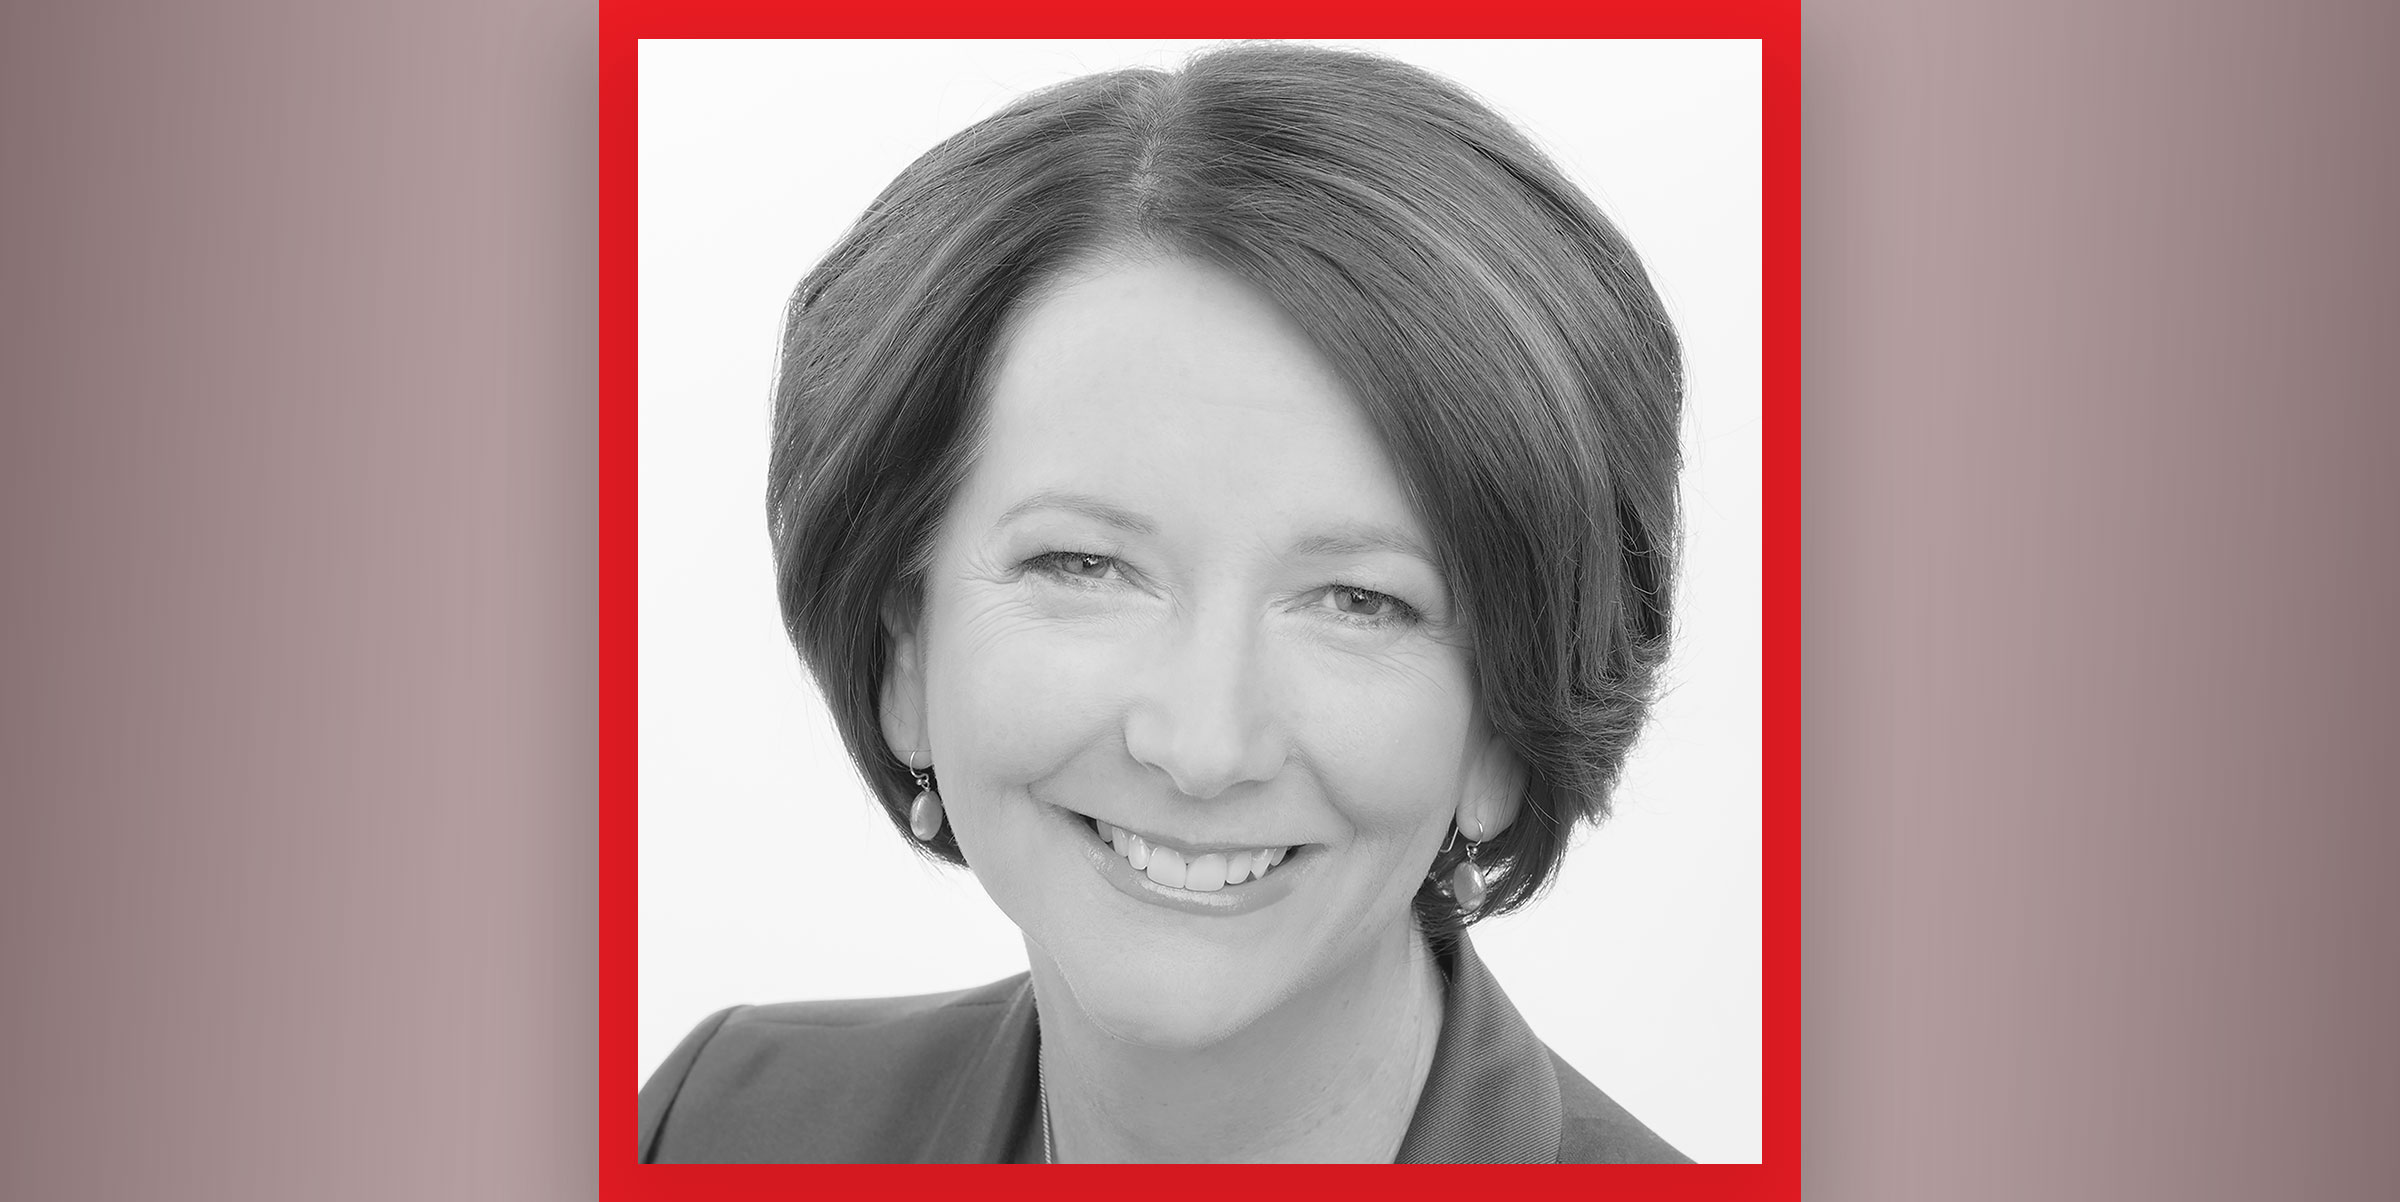 Julia Gillard said women in leadership still must be prepared to face sexism, while speaking at the TIME100 Talks on Tuesday, Aug. 18, 2020.